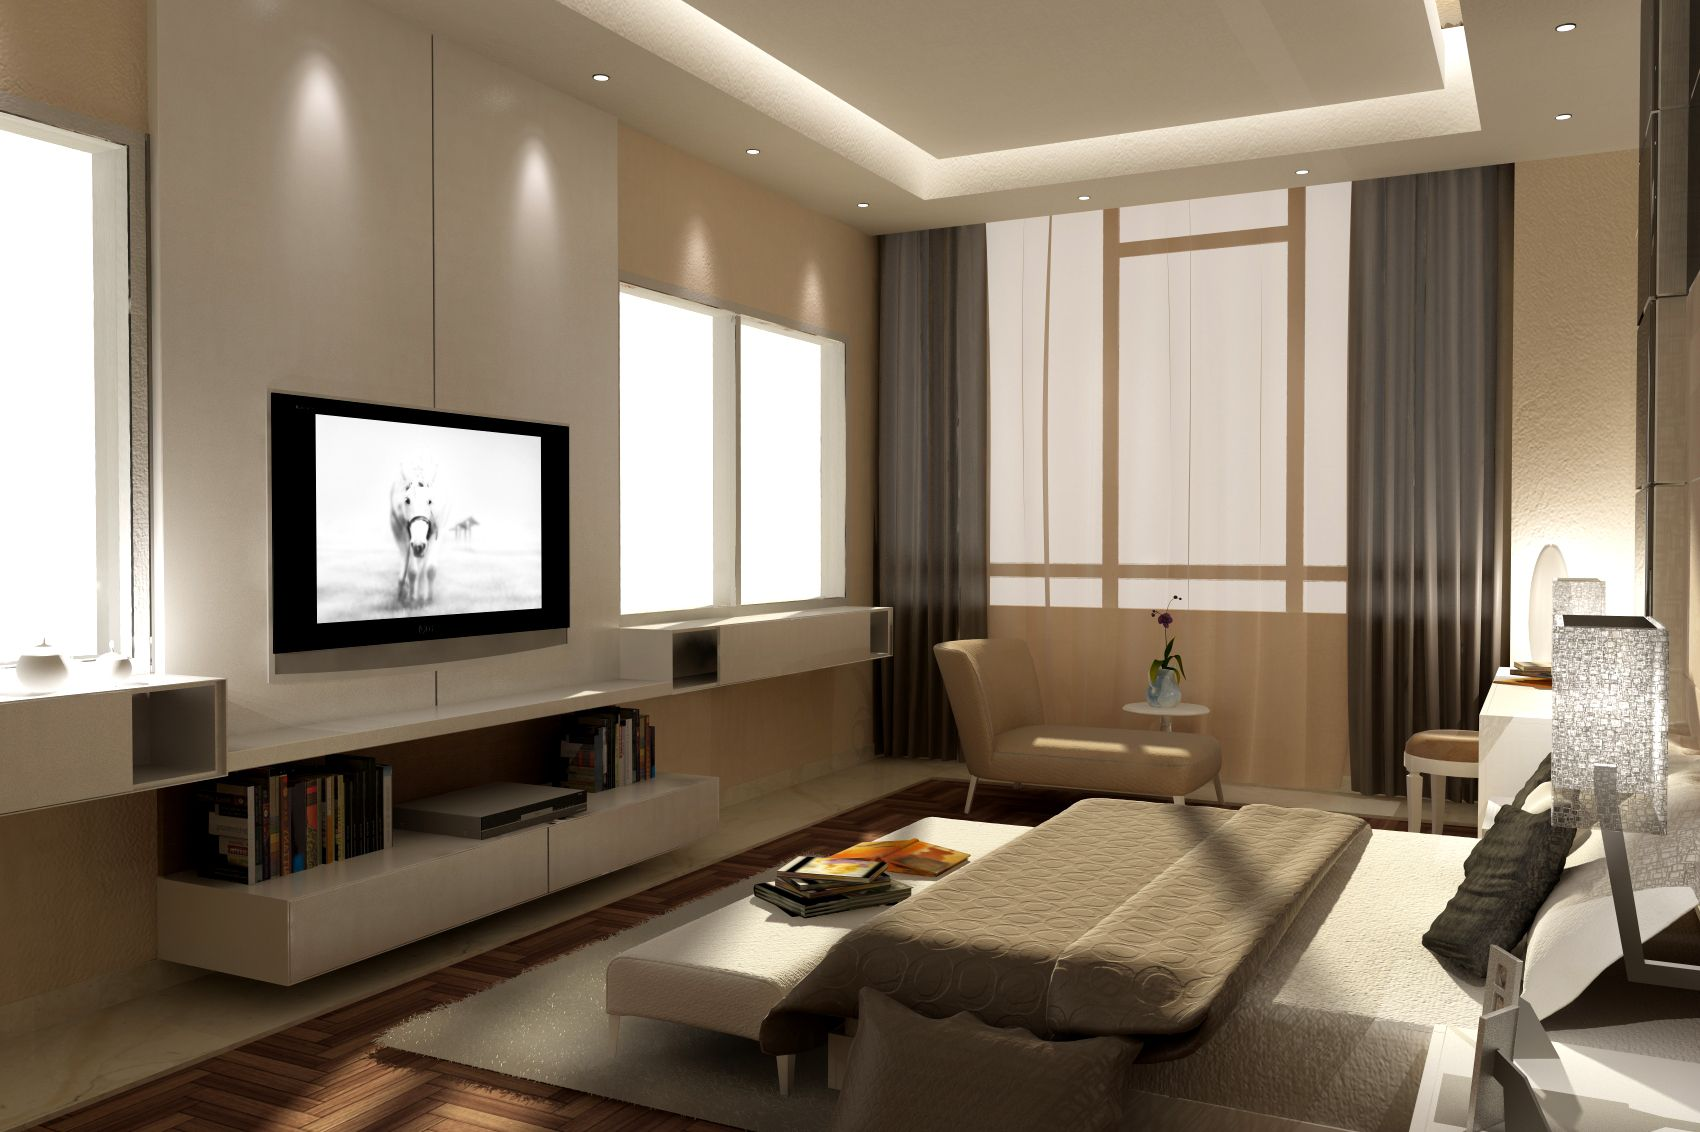 Bedroom modern bedroom interior design 3d max 3d for Indoor design modern